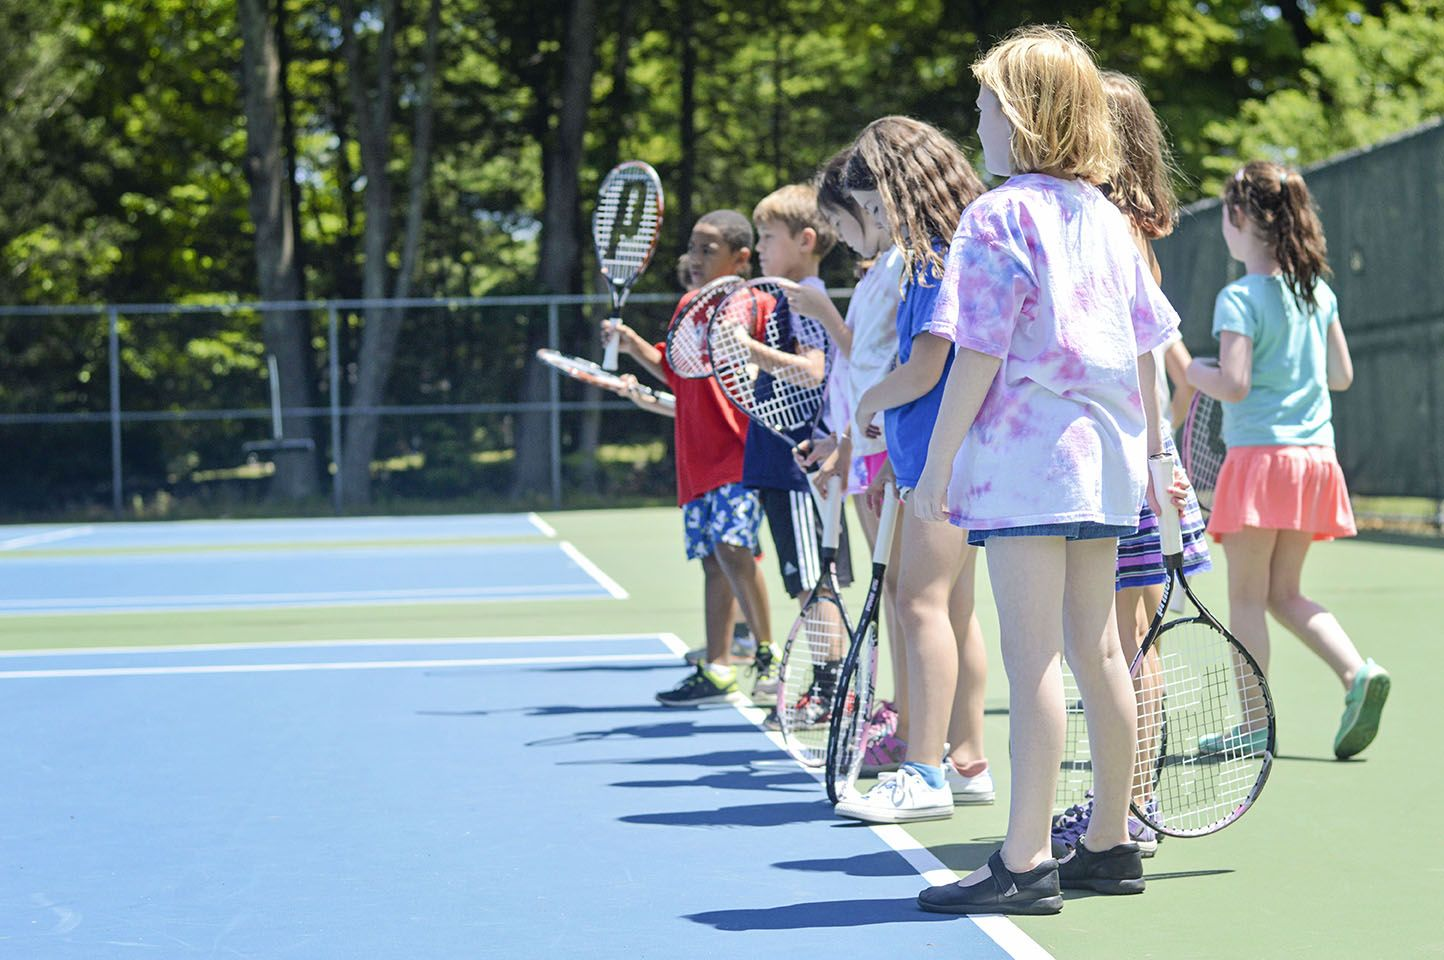 We have eight hard-surface tennis courts that all campers can use and where our tennis Specialty Camp takes place.